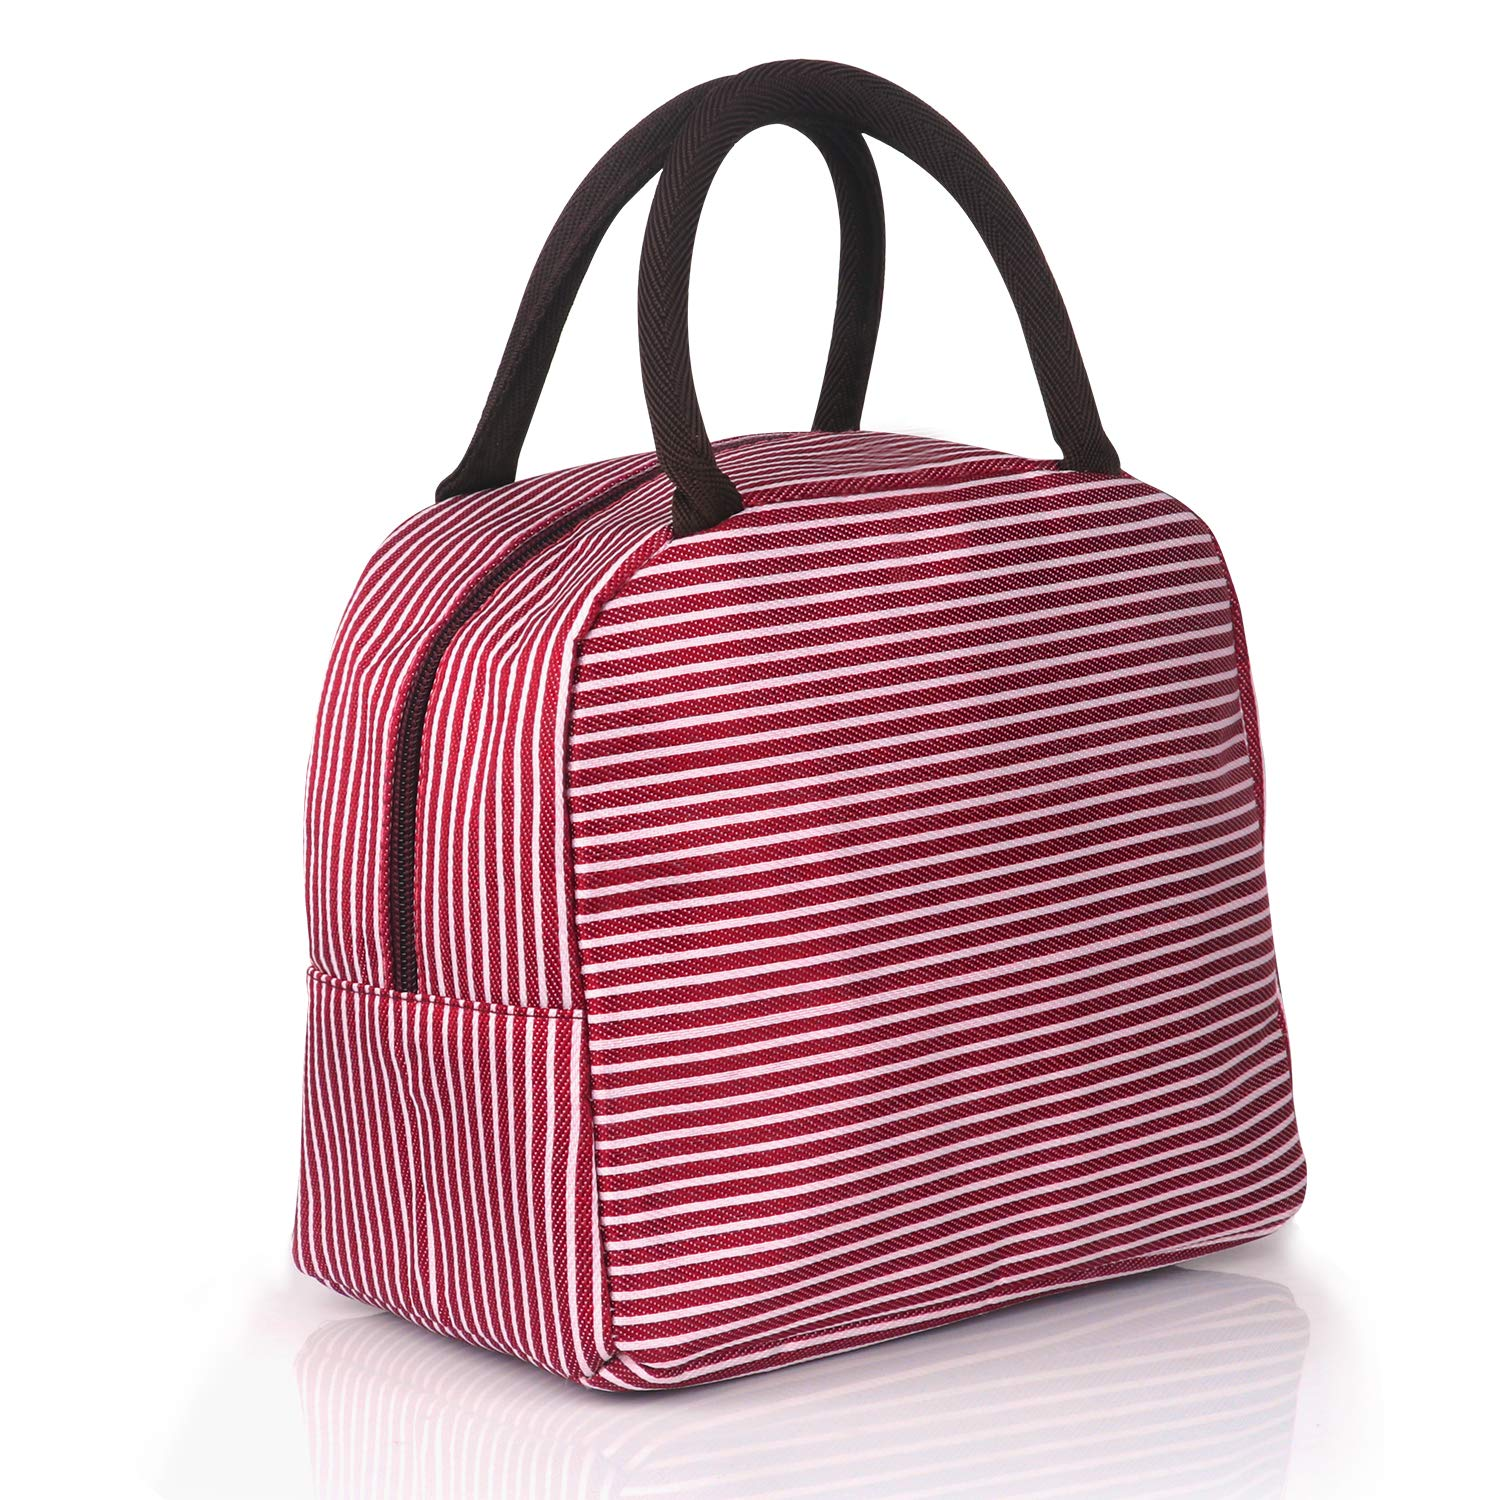 QTaker Reusable zipper Lunch Bag Tote Bag Lunch box Lunch Organizer Lunch Holder Lunch Container( stripes) red